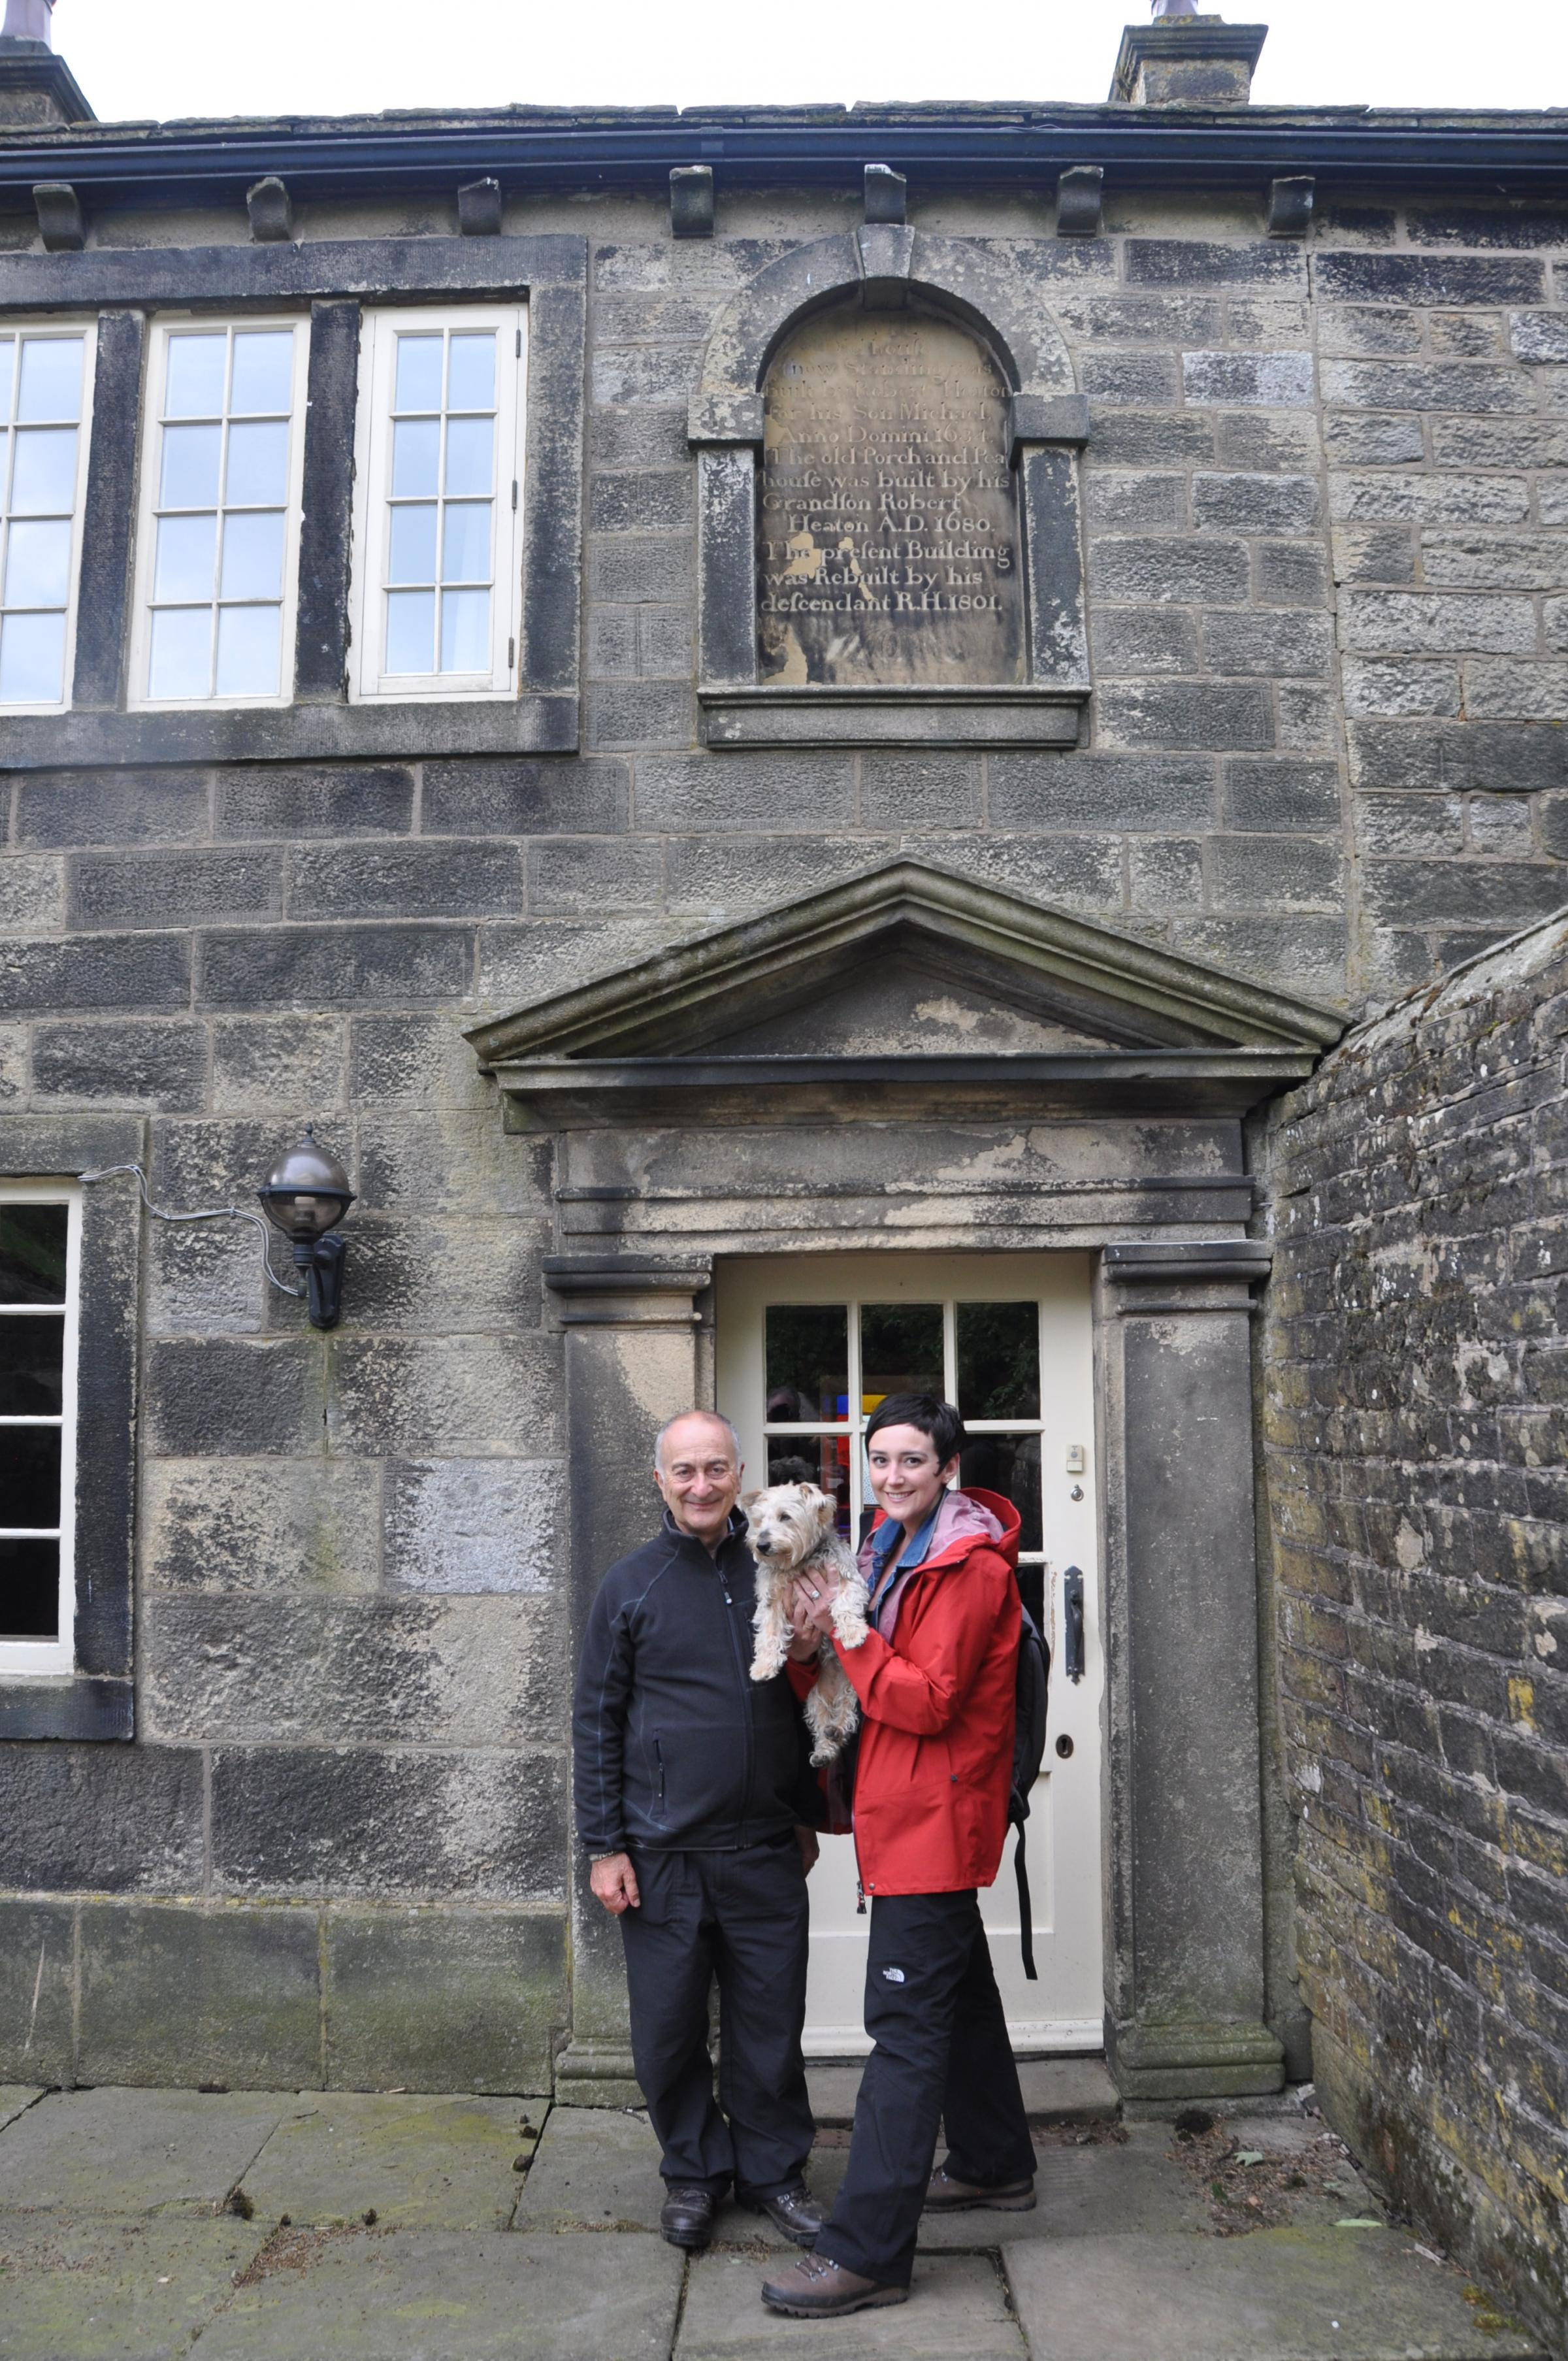 Sir Tony Robinson, his wife Louise, and their dog Winnie outside Ponden Hall